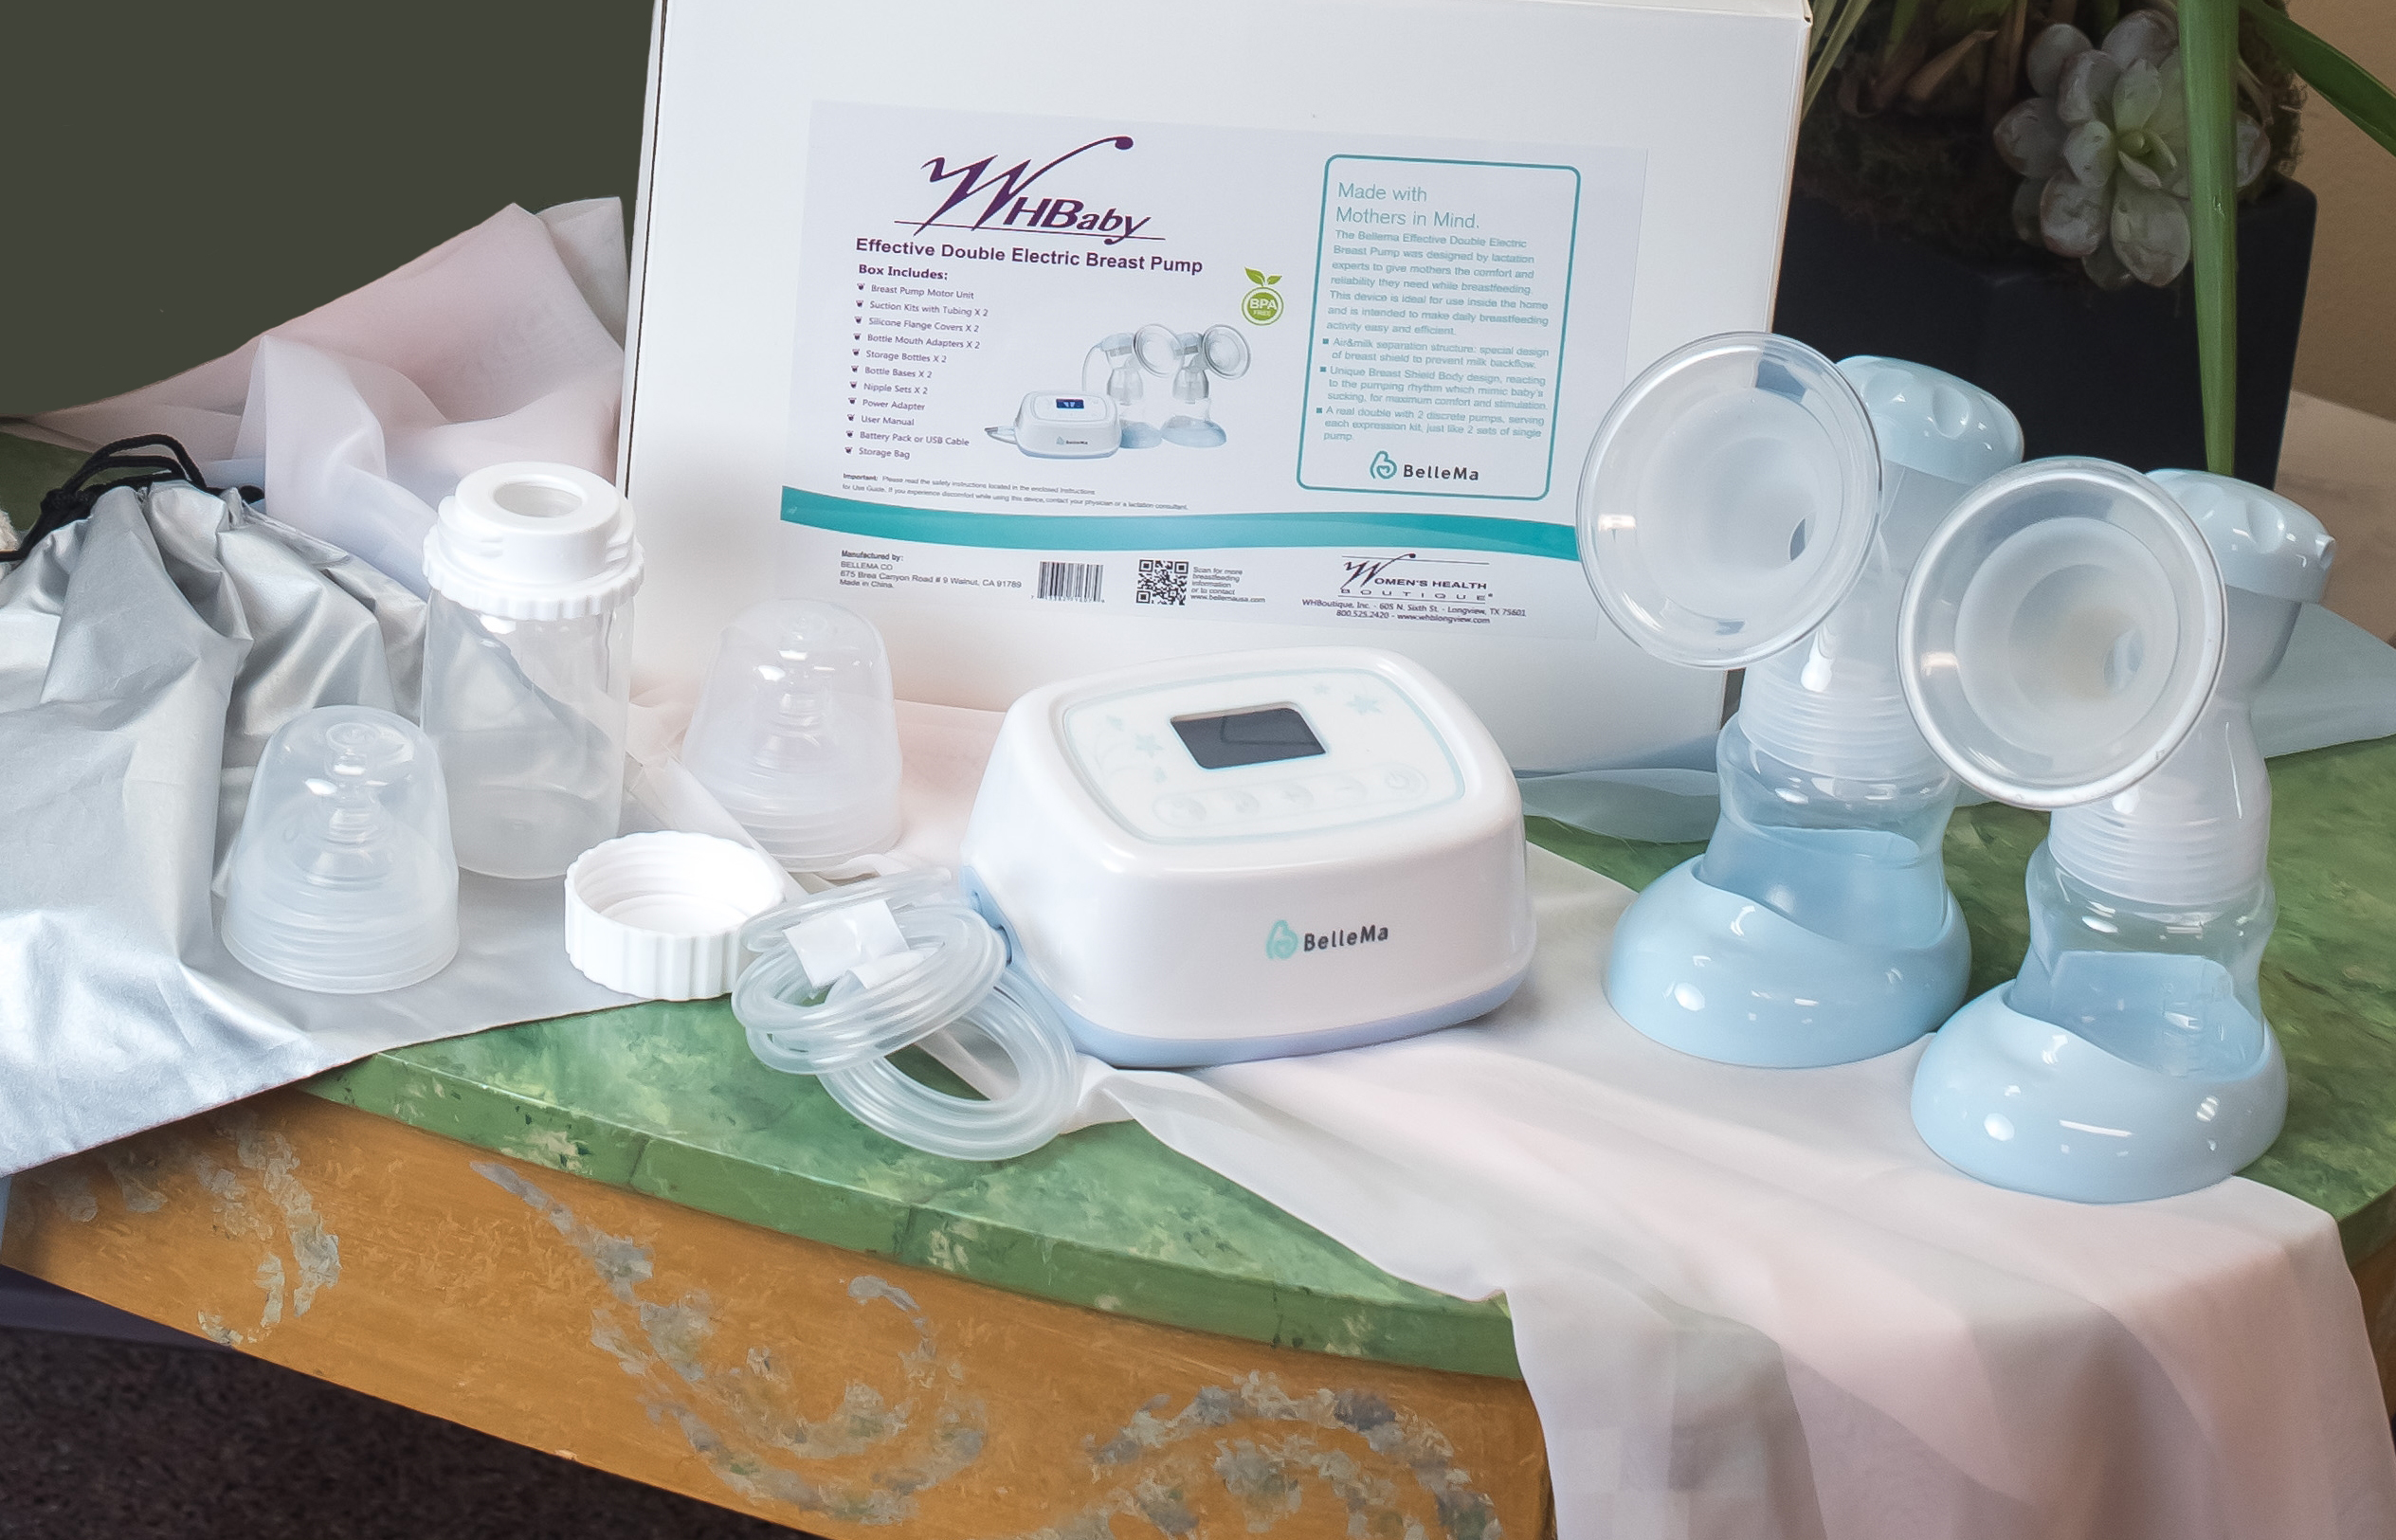 WHBaby Breast Pump